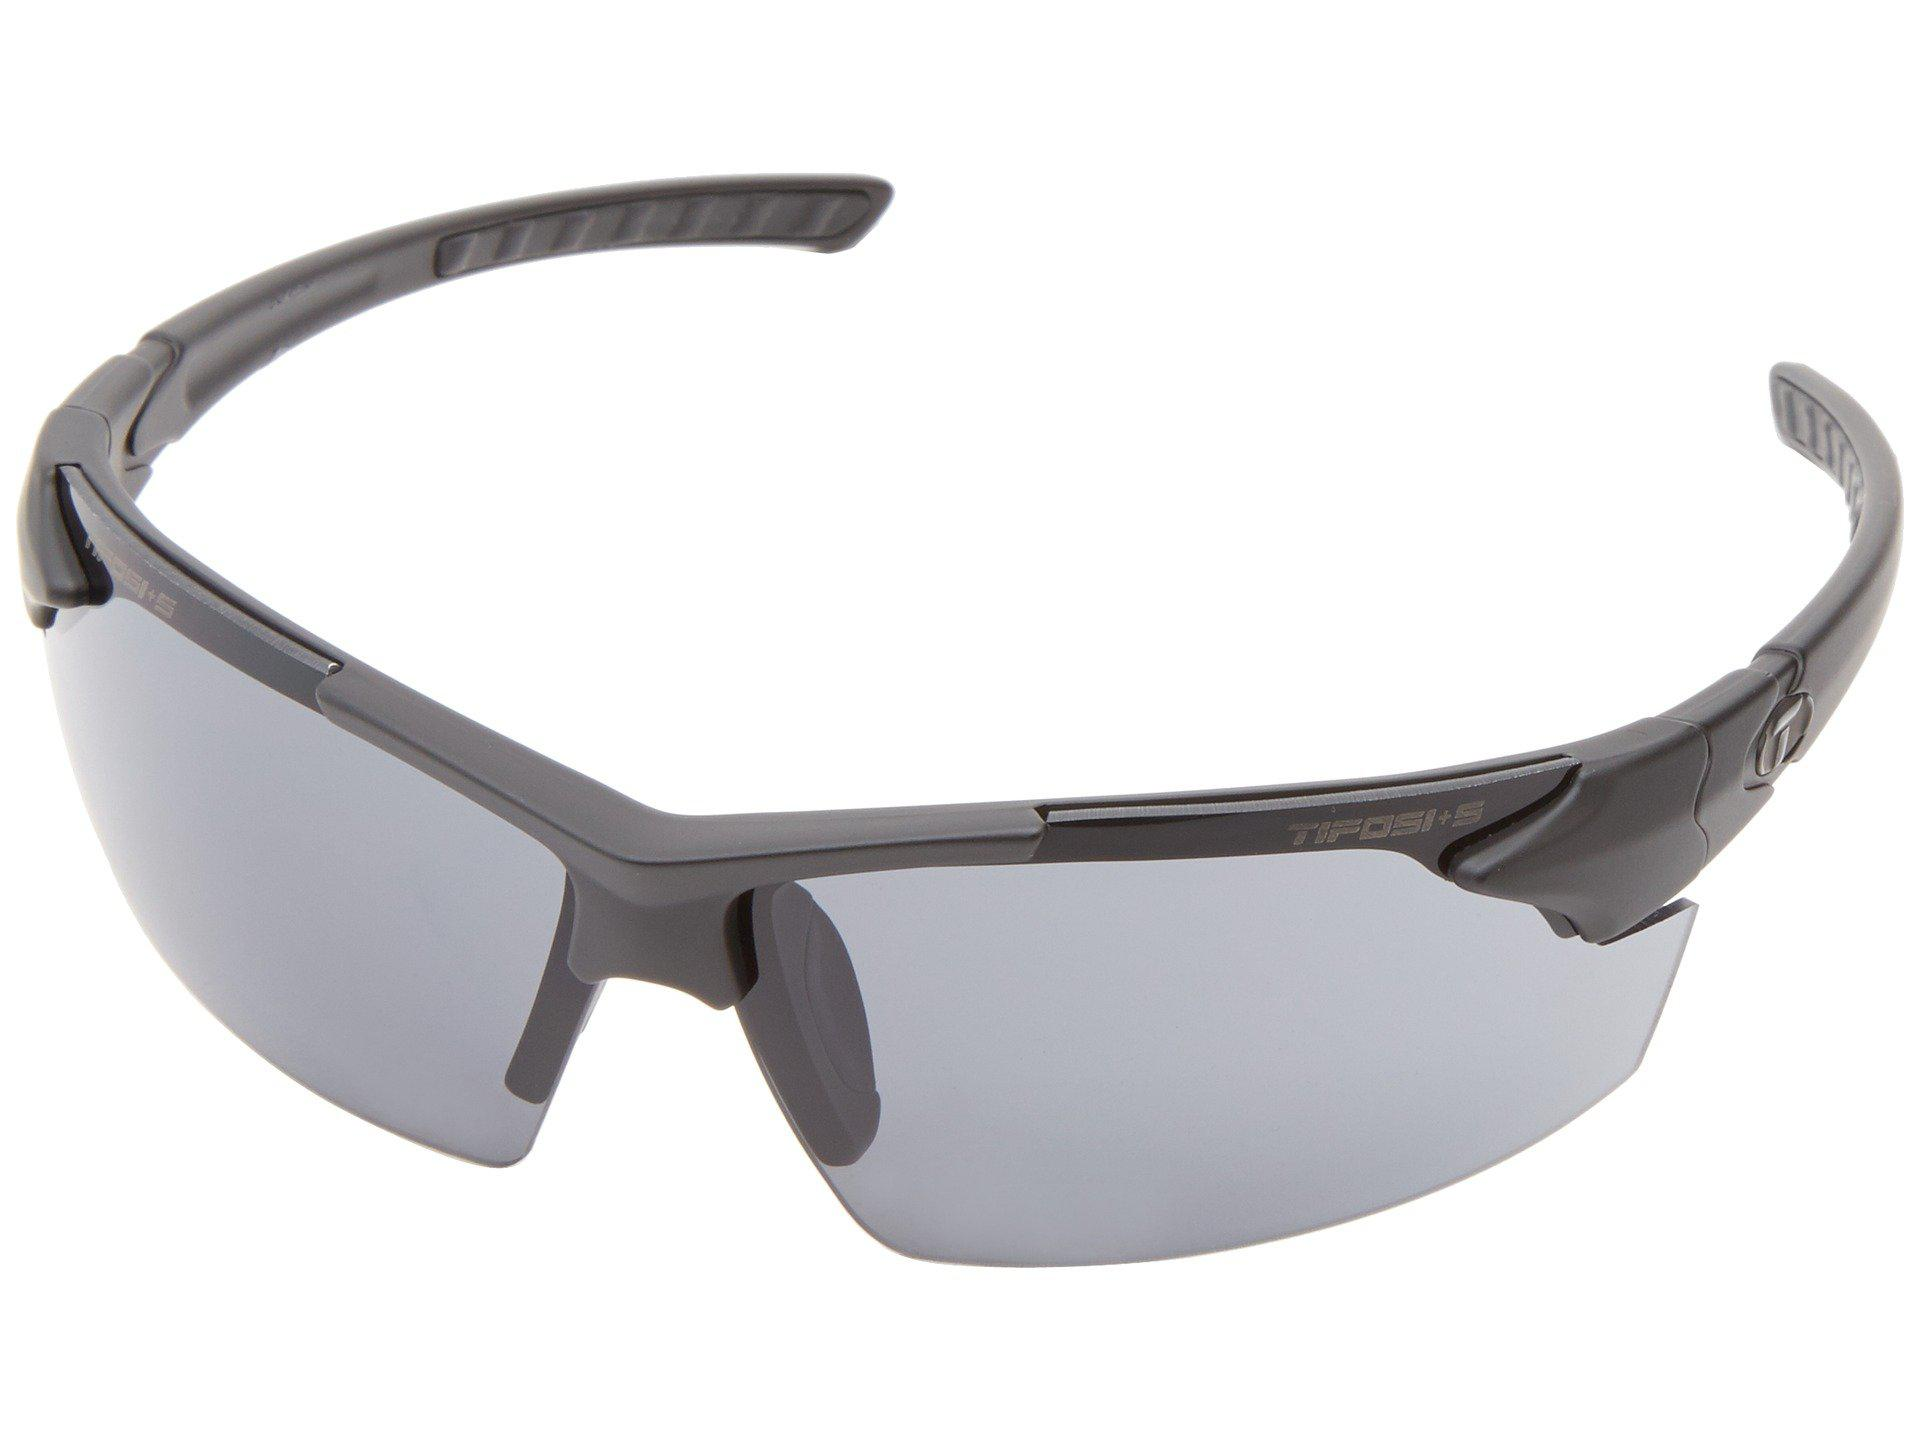 ec56dfeae72b Lyst - Tifosi Optics Jet Fc Tactical Interchangeable (matte Black ...